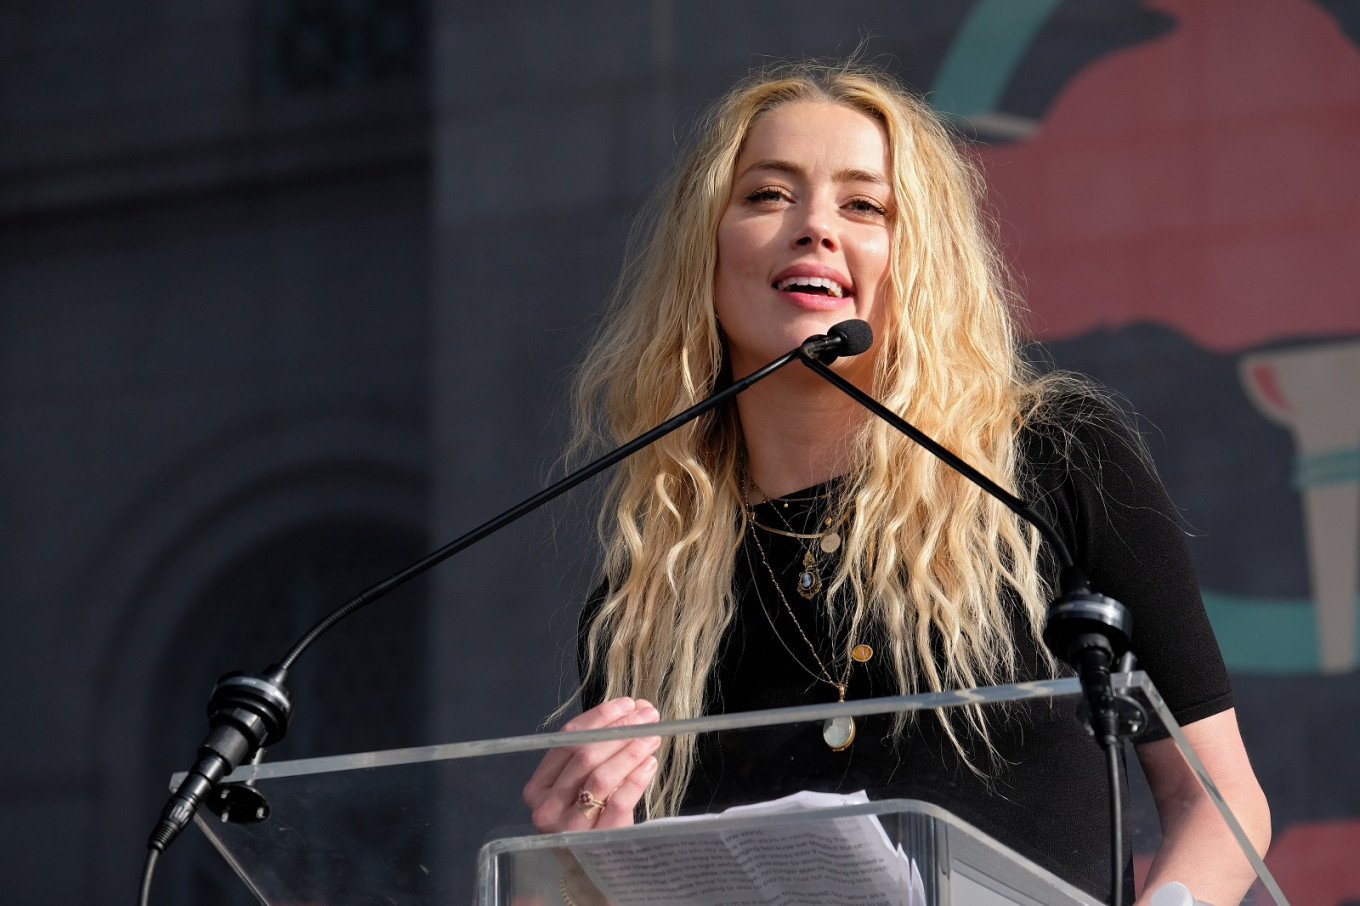 Thousands sign petitions to remove Amber Heard as L'Oréal spokesperson